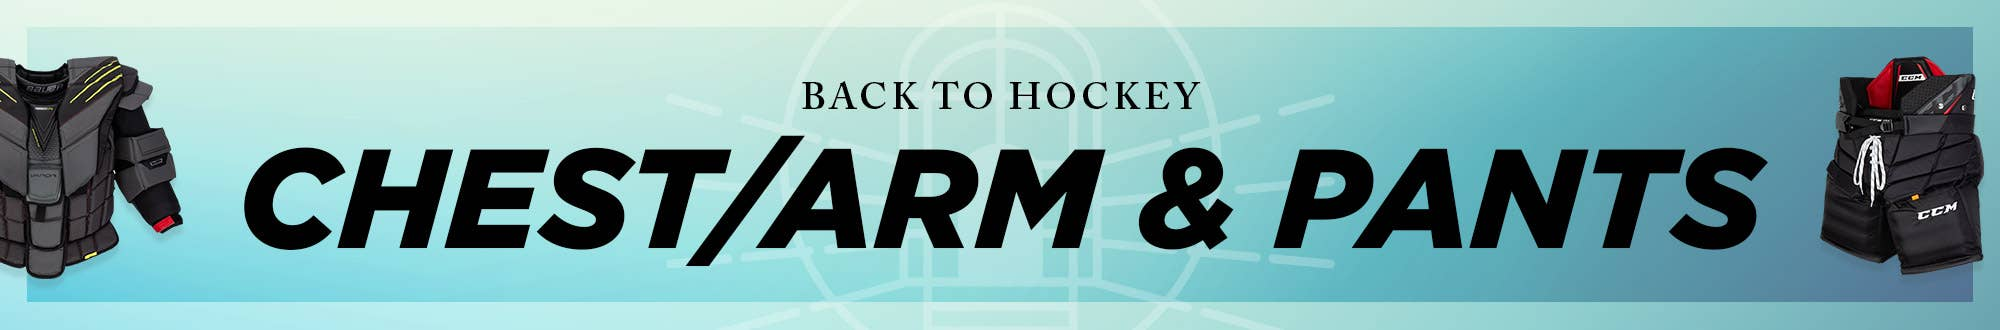 Back to Hockey: Goalie Chest & Arm Protectors and Pants